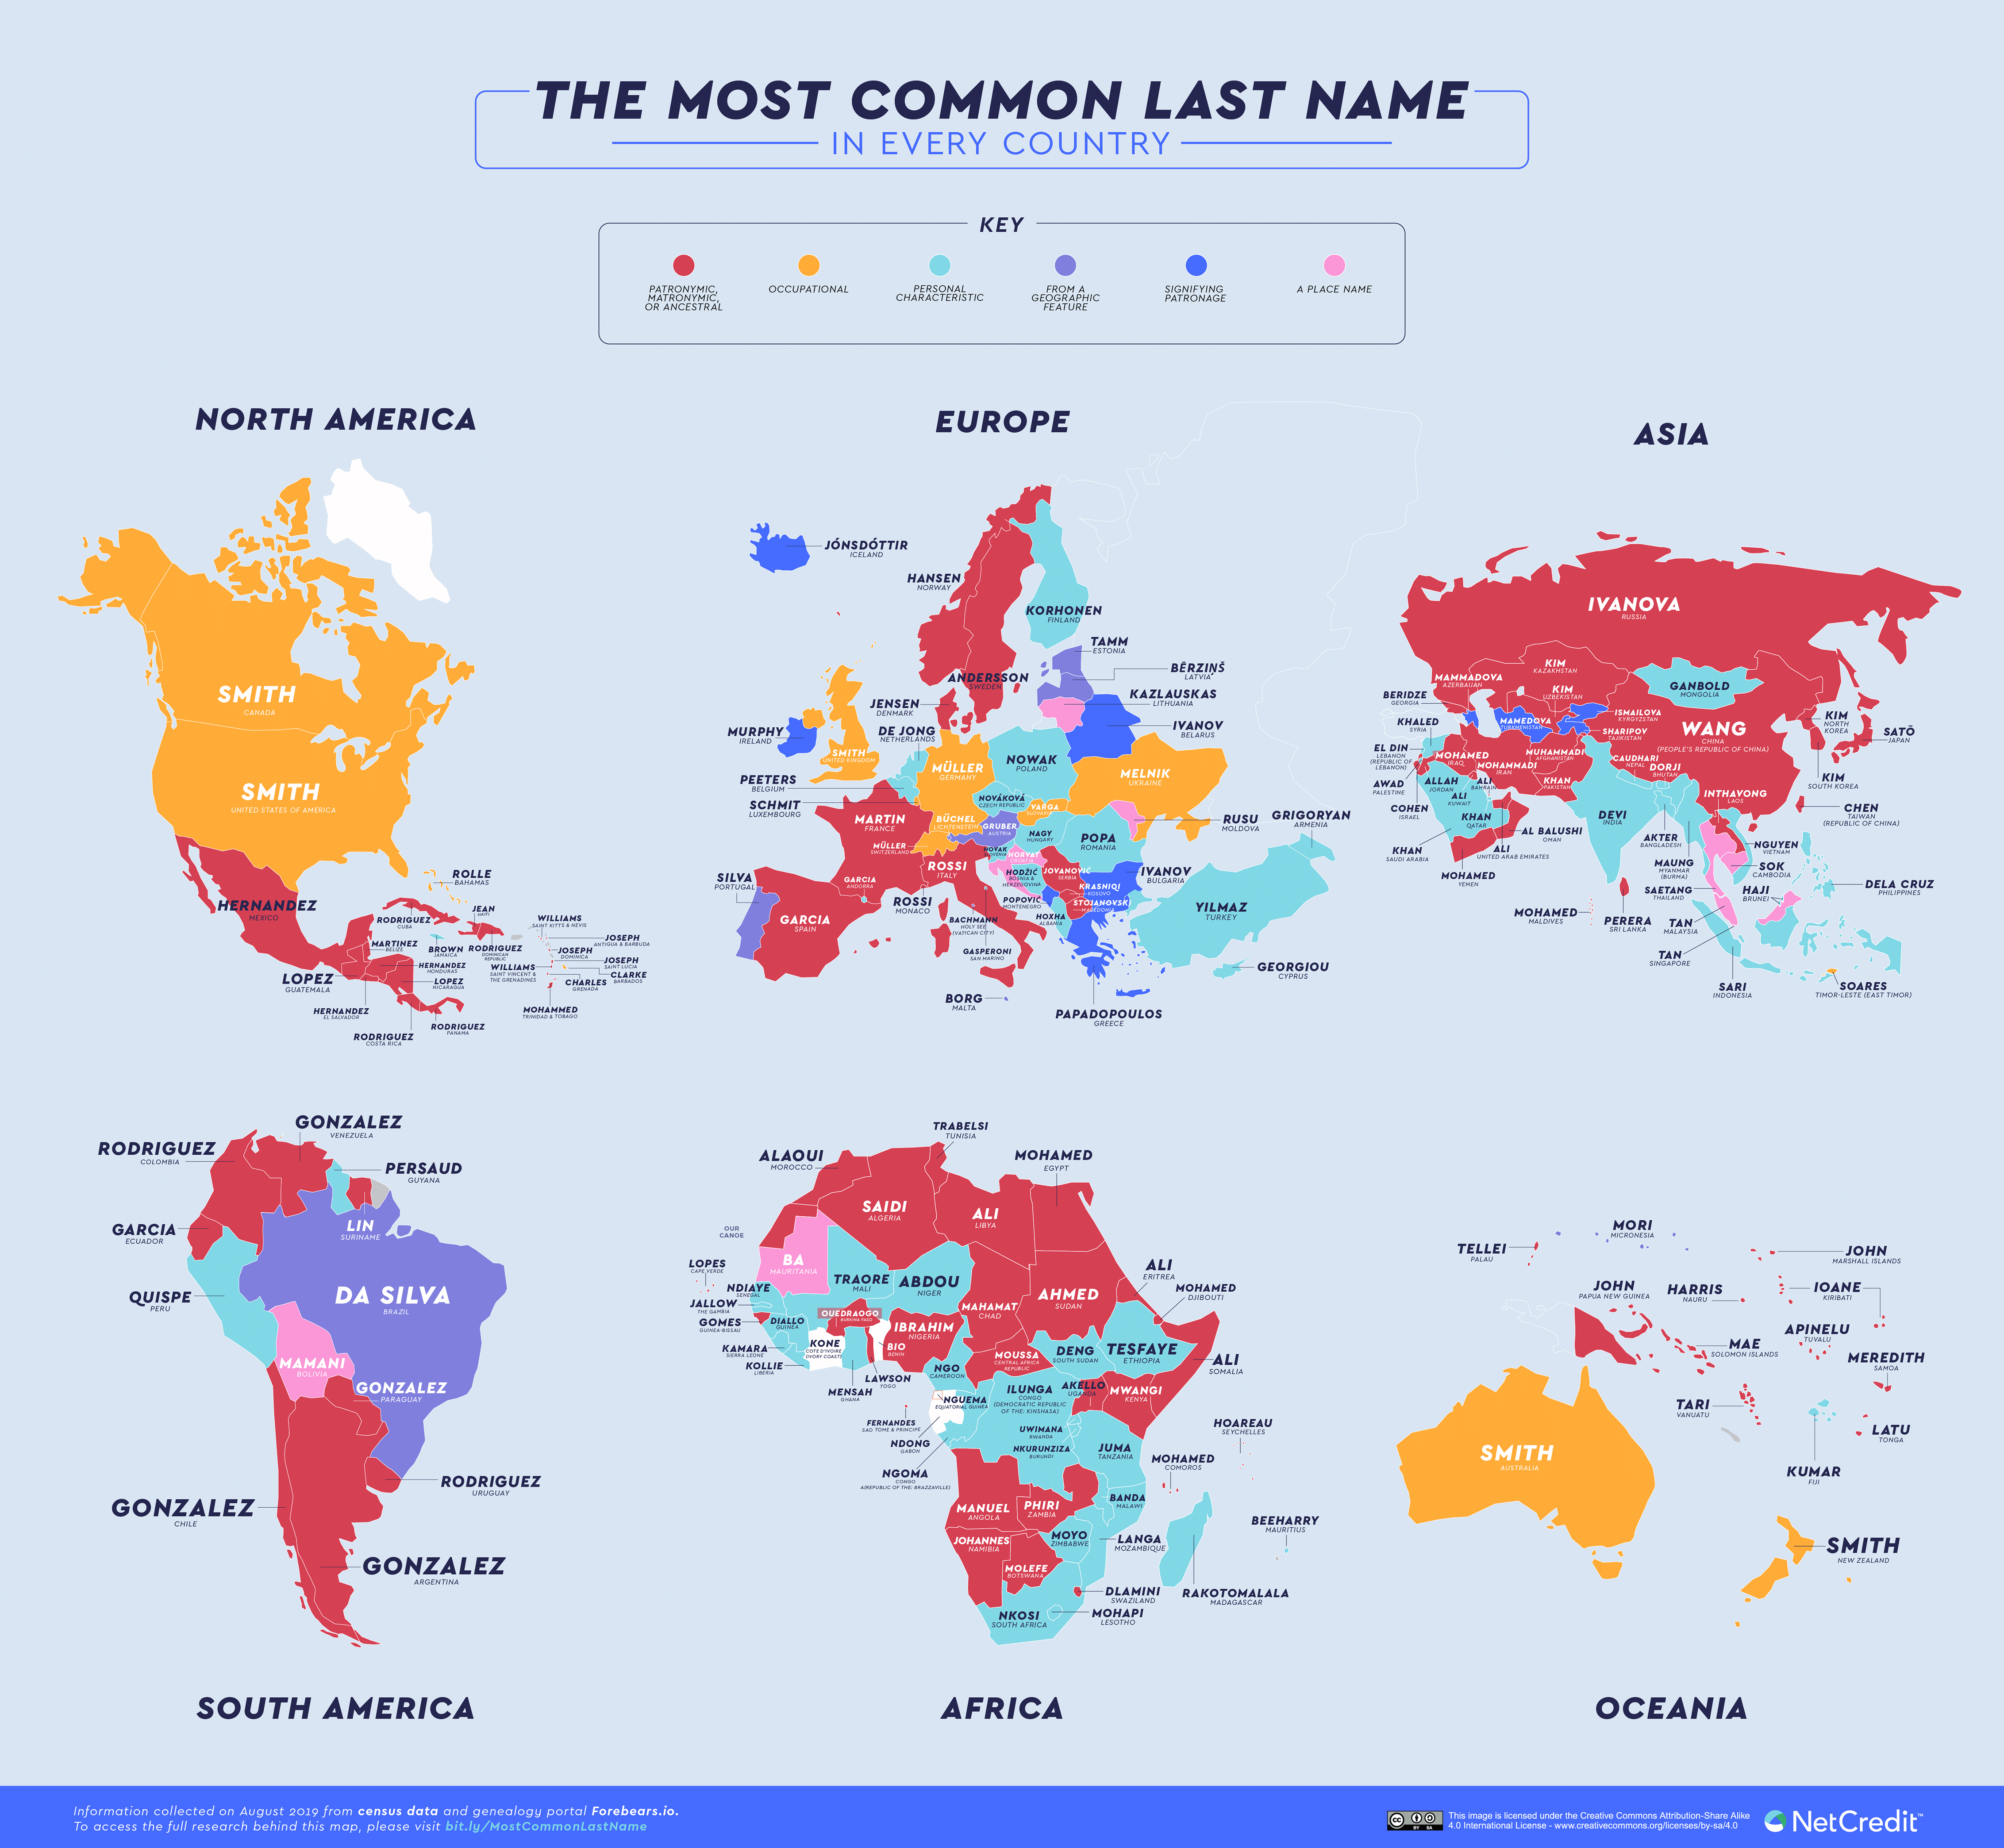 The Most Common Last Name in Every Country Full Map